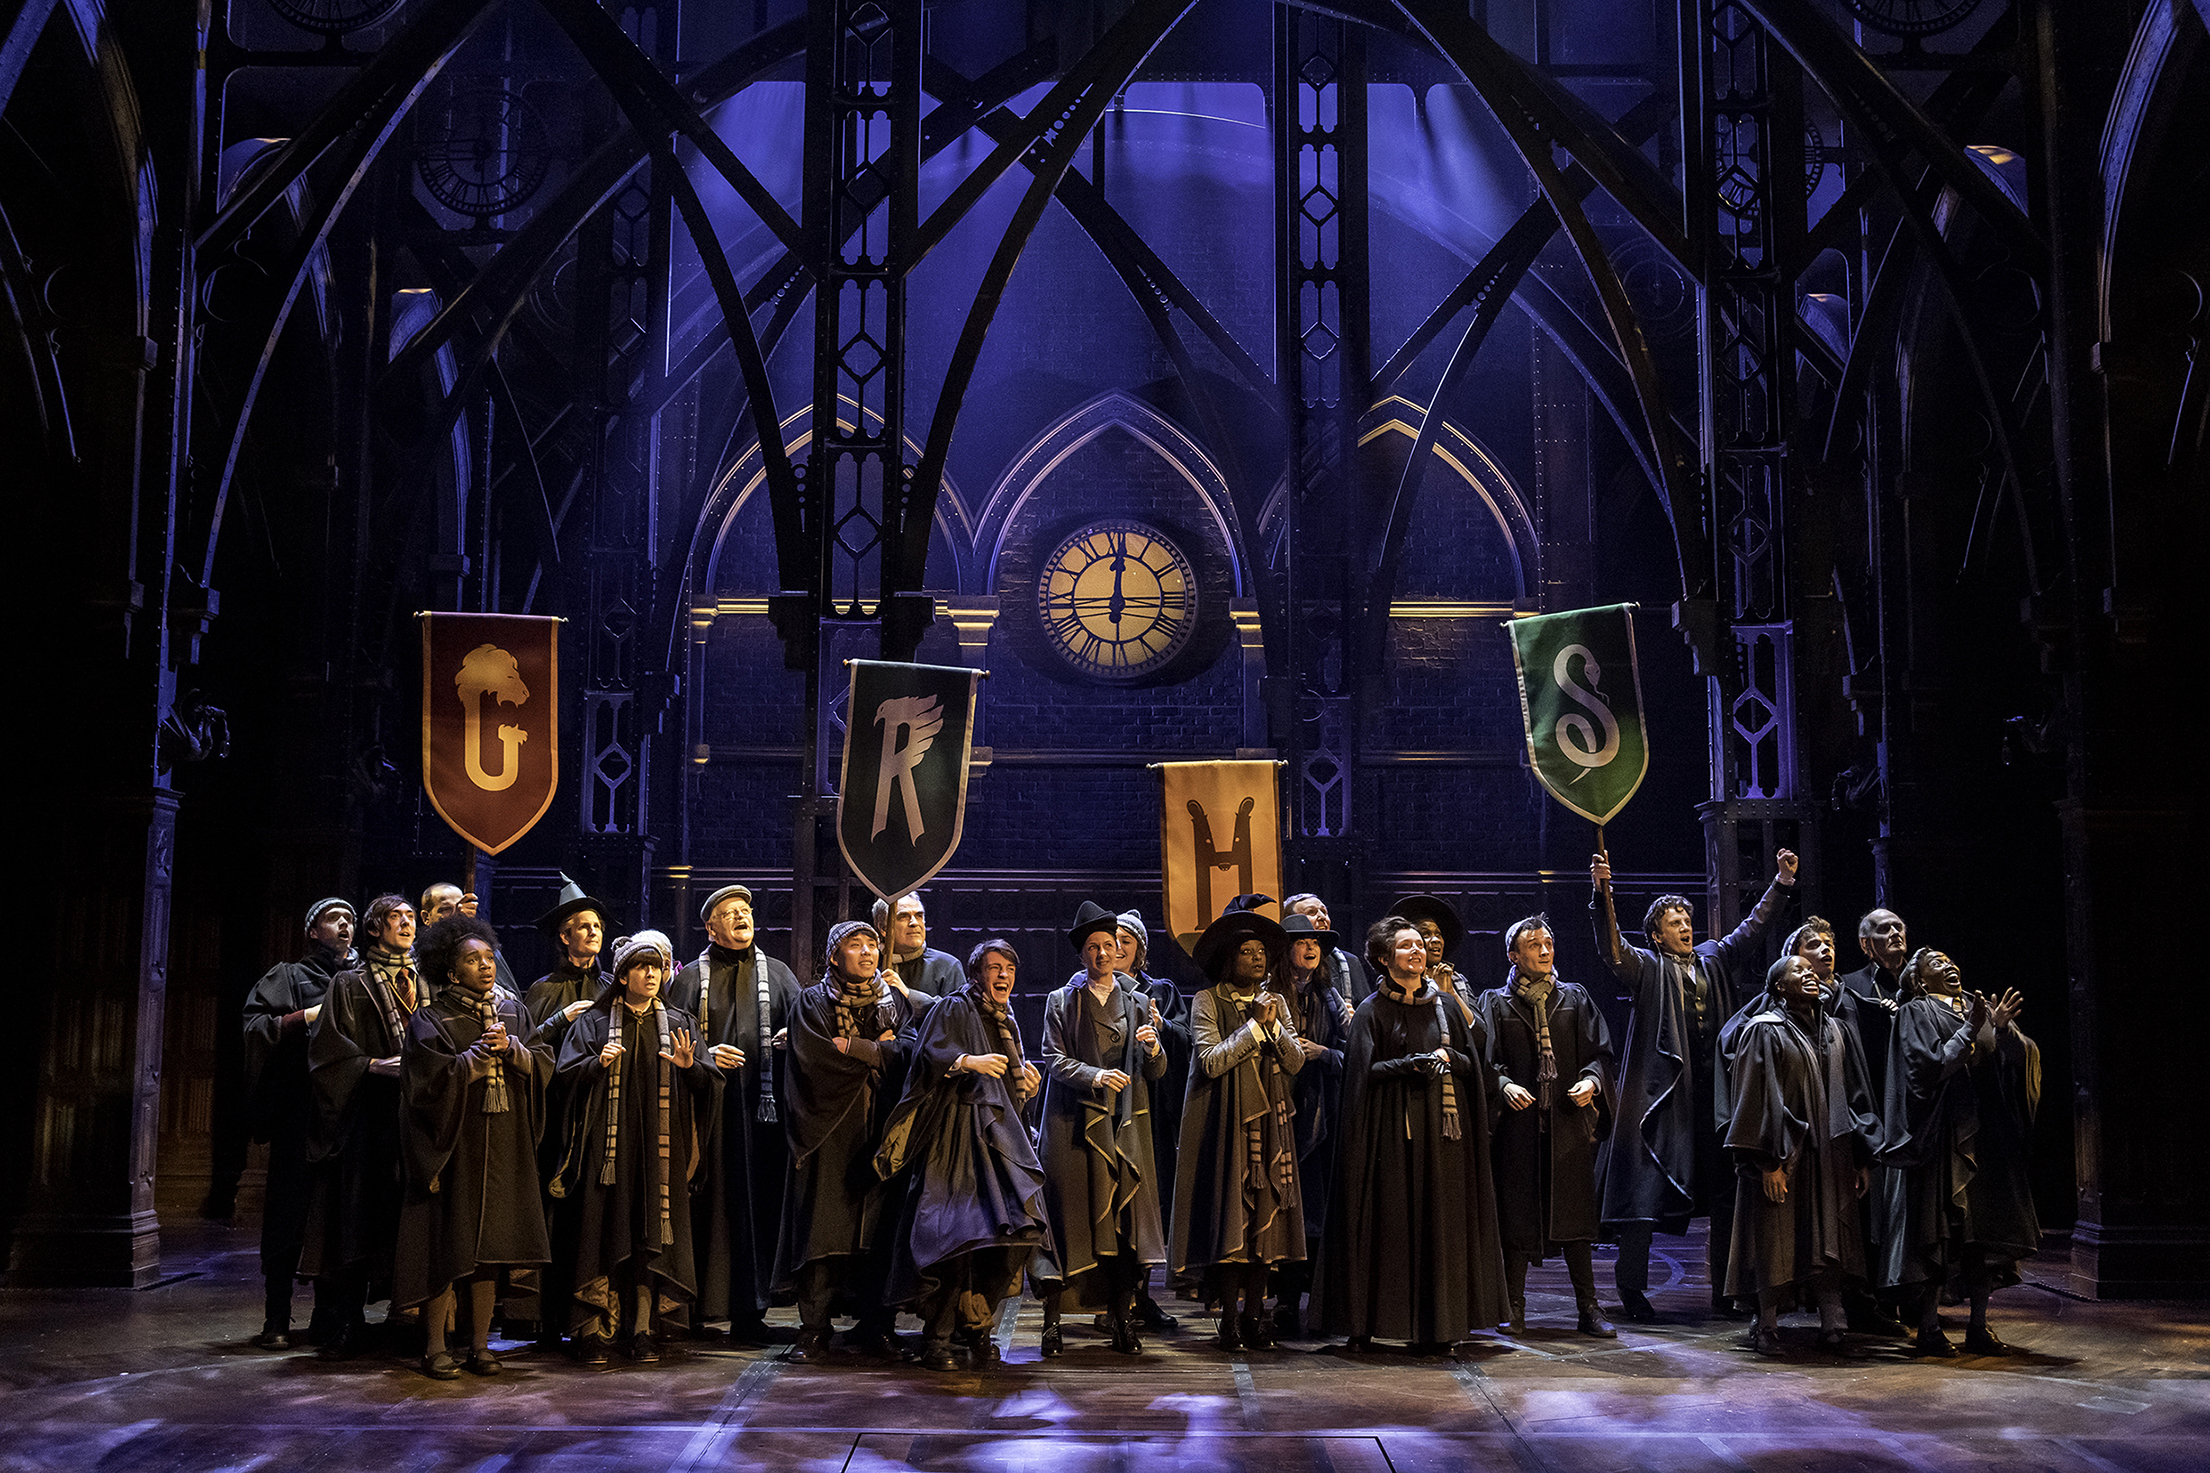 HPCC Original Cursed Child cast